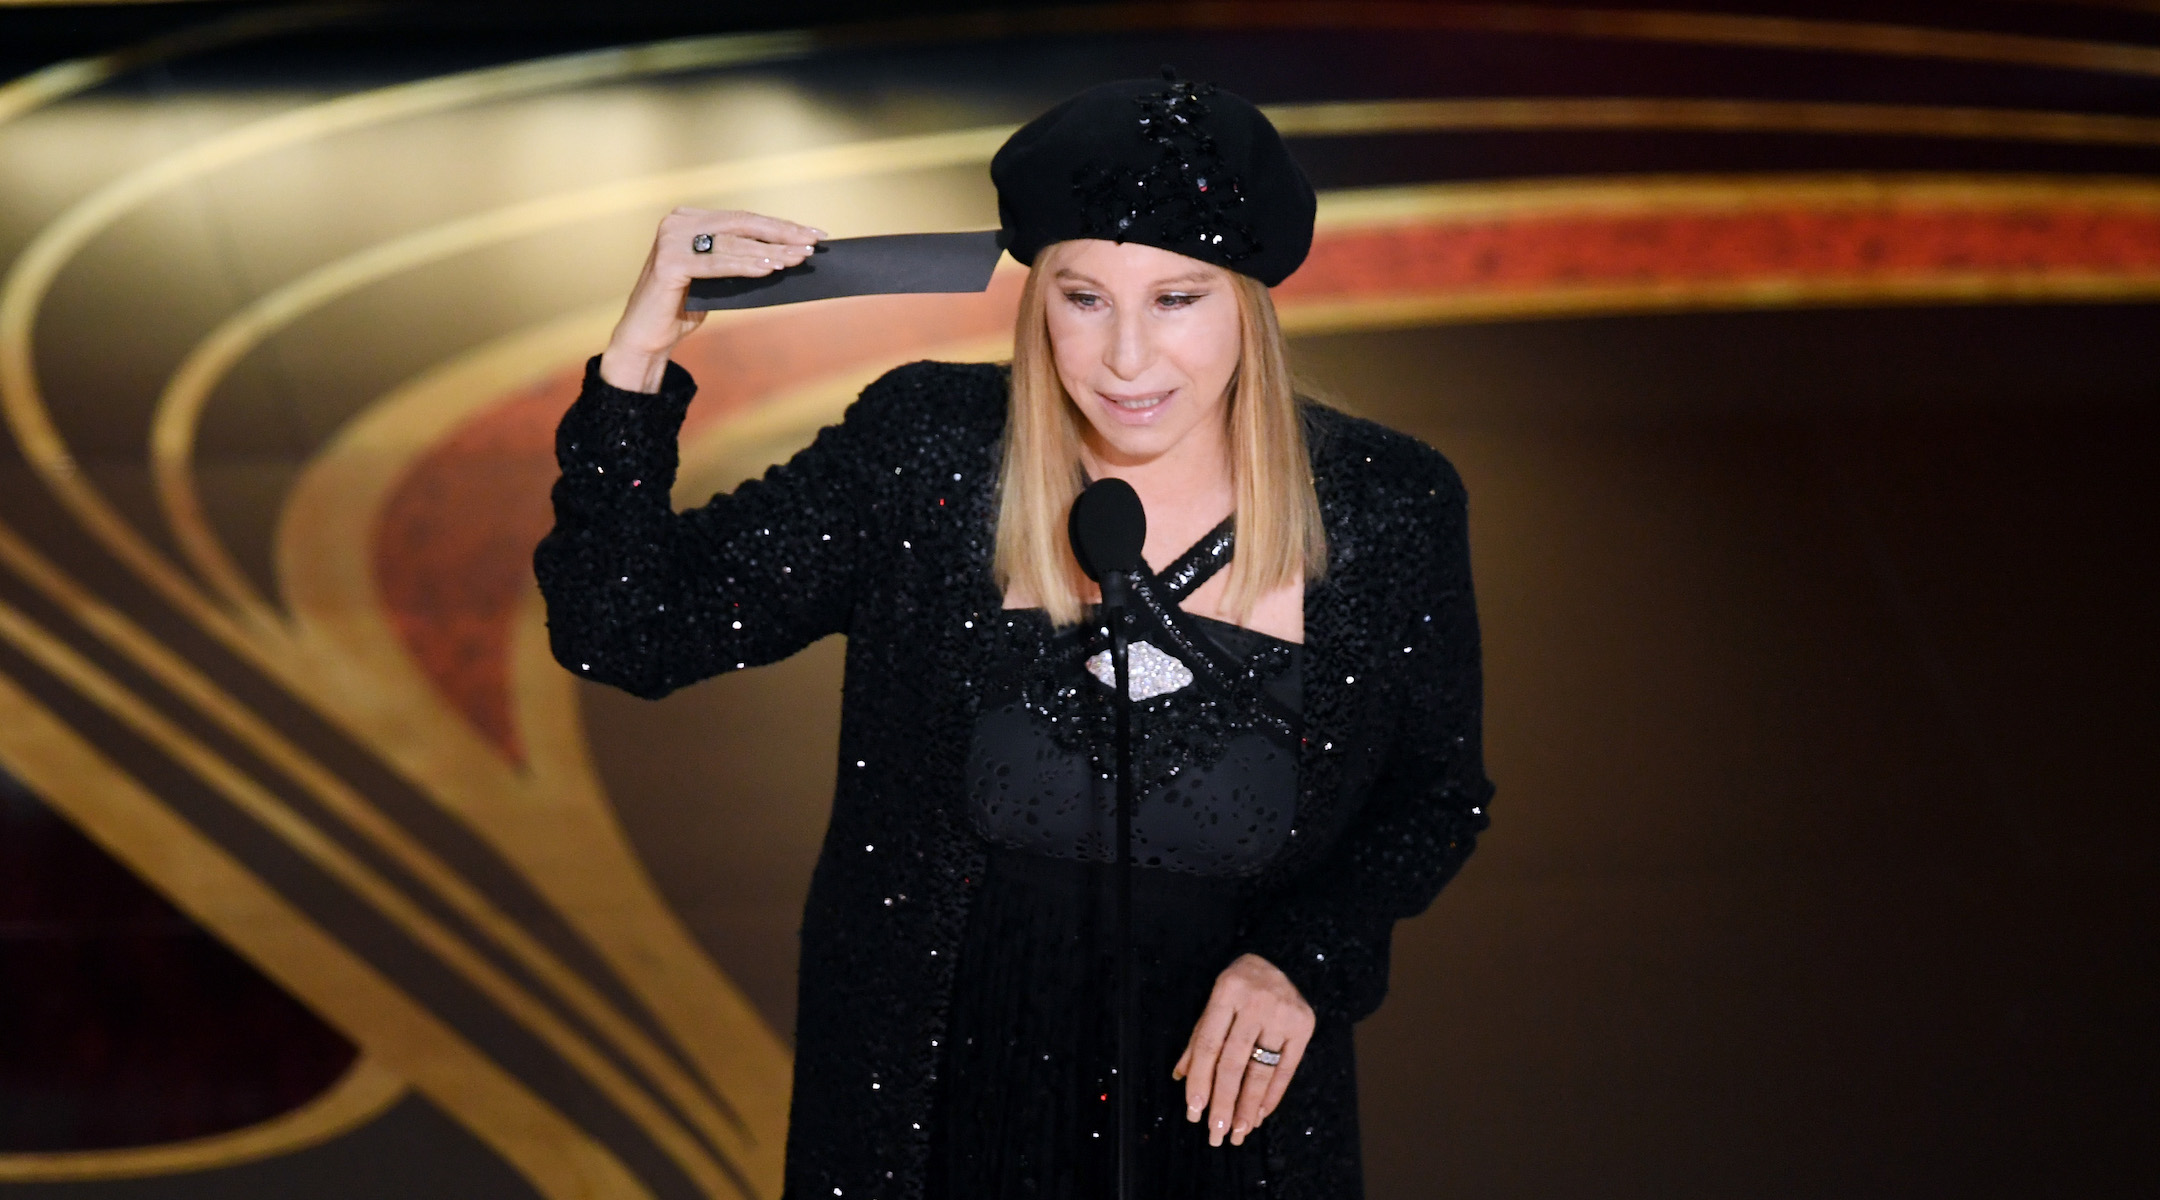 Barbra Streisand speaks onstage at the Academy Awards in Hollywood, Feb. 24, 2019. (Photo/JTA-Kevin Winter-Getty Images)